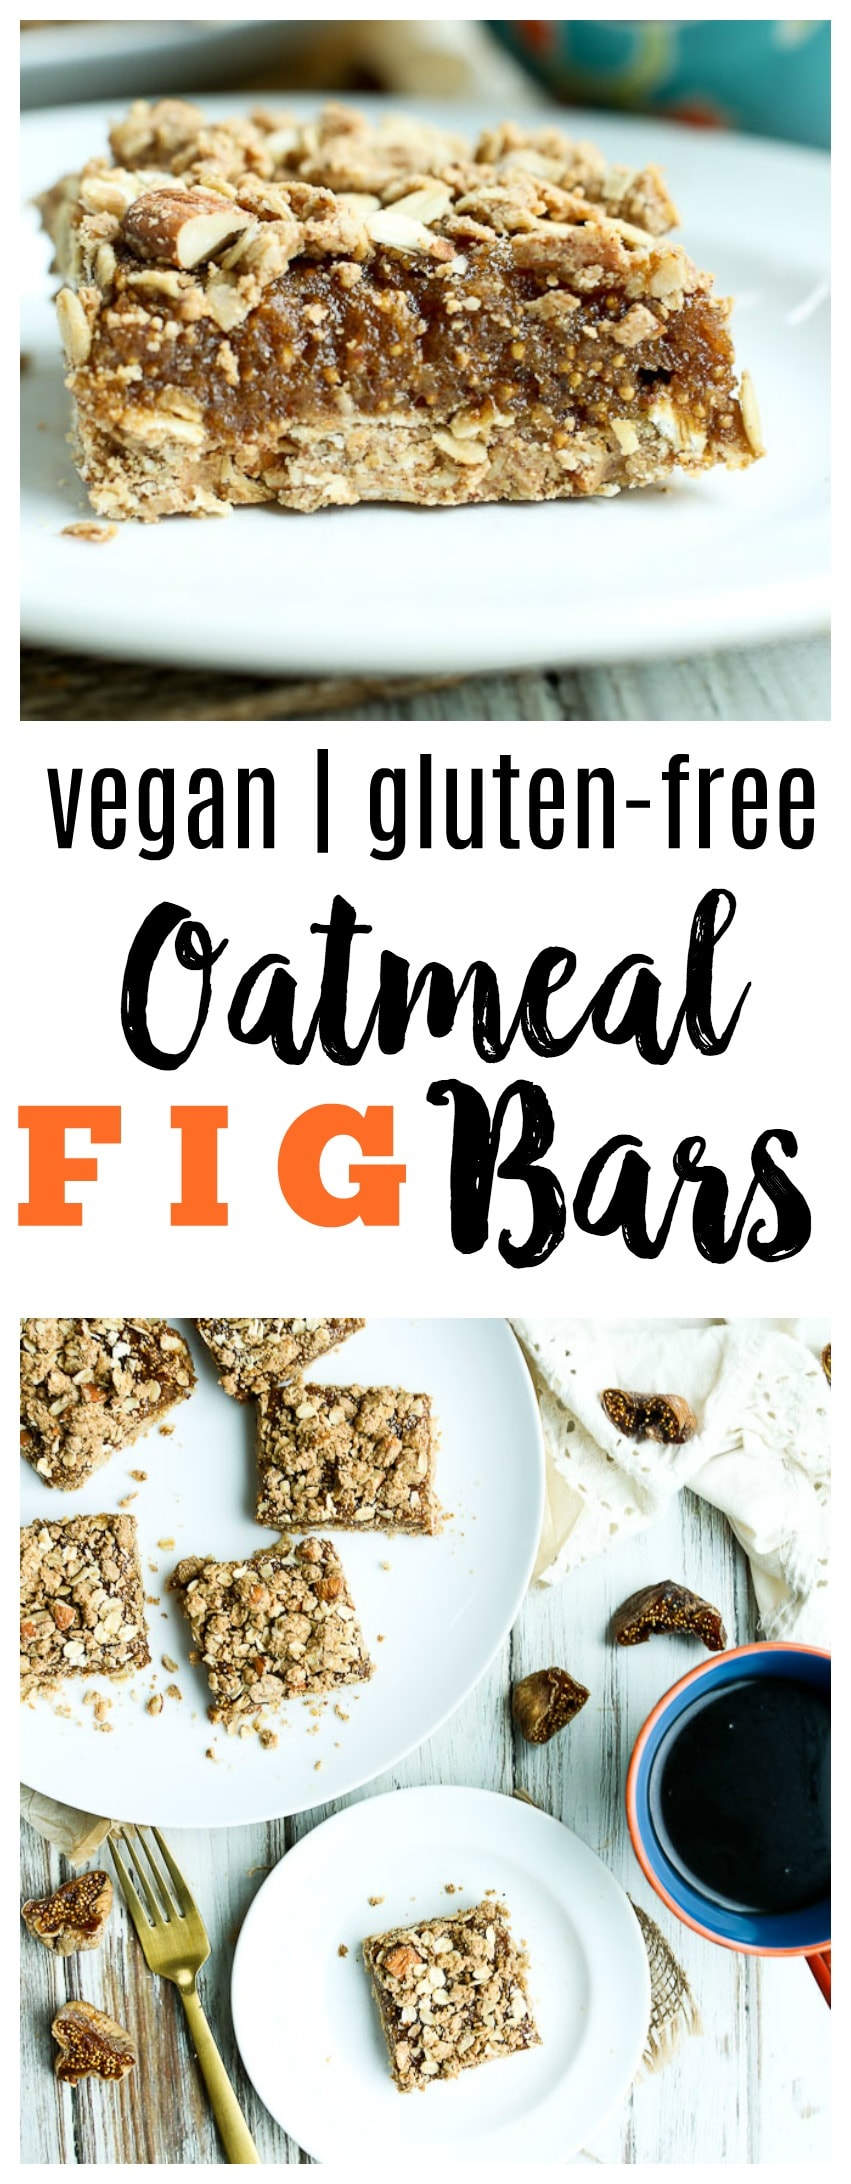 Oatmeal Fig Bars Recipe. gluten-free and vegan healthy recipe great for breakfast snack or dessert